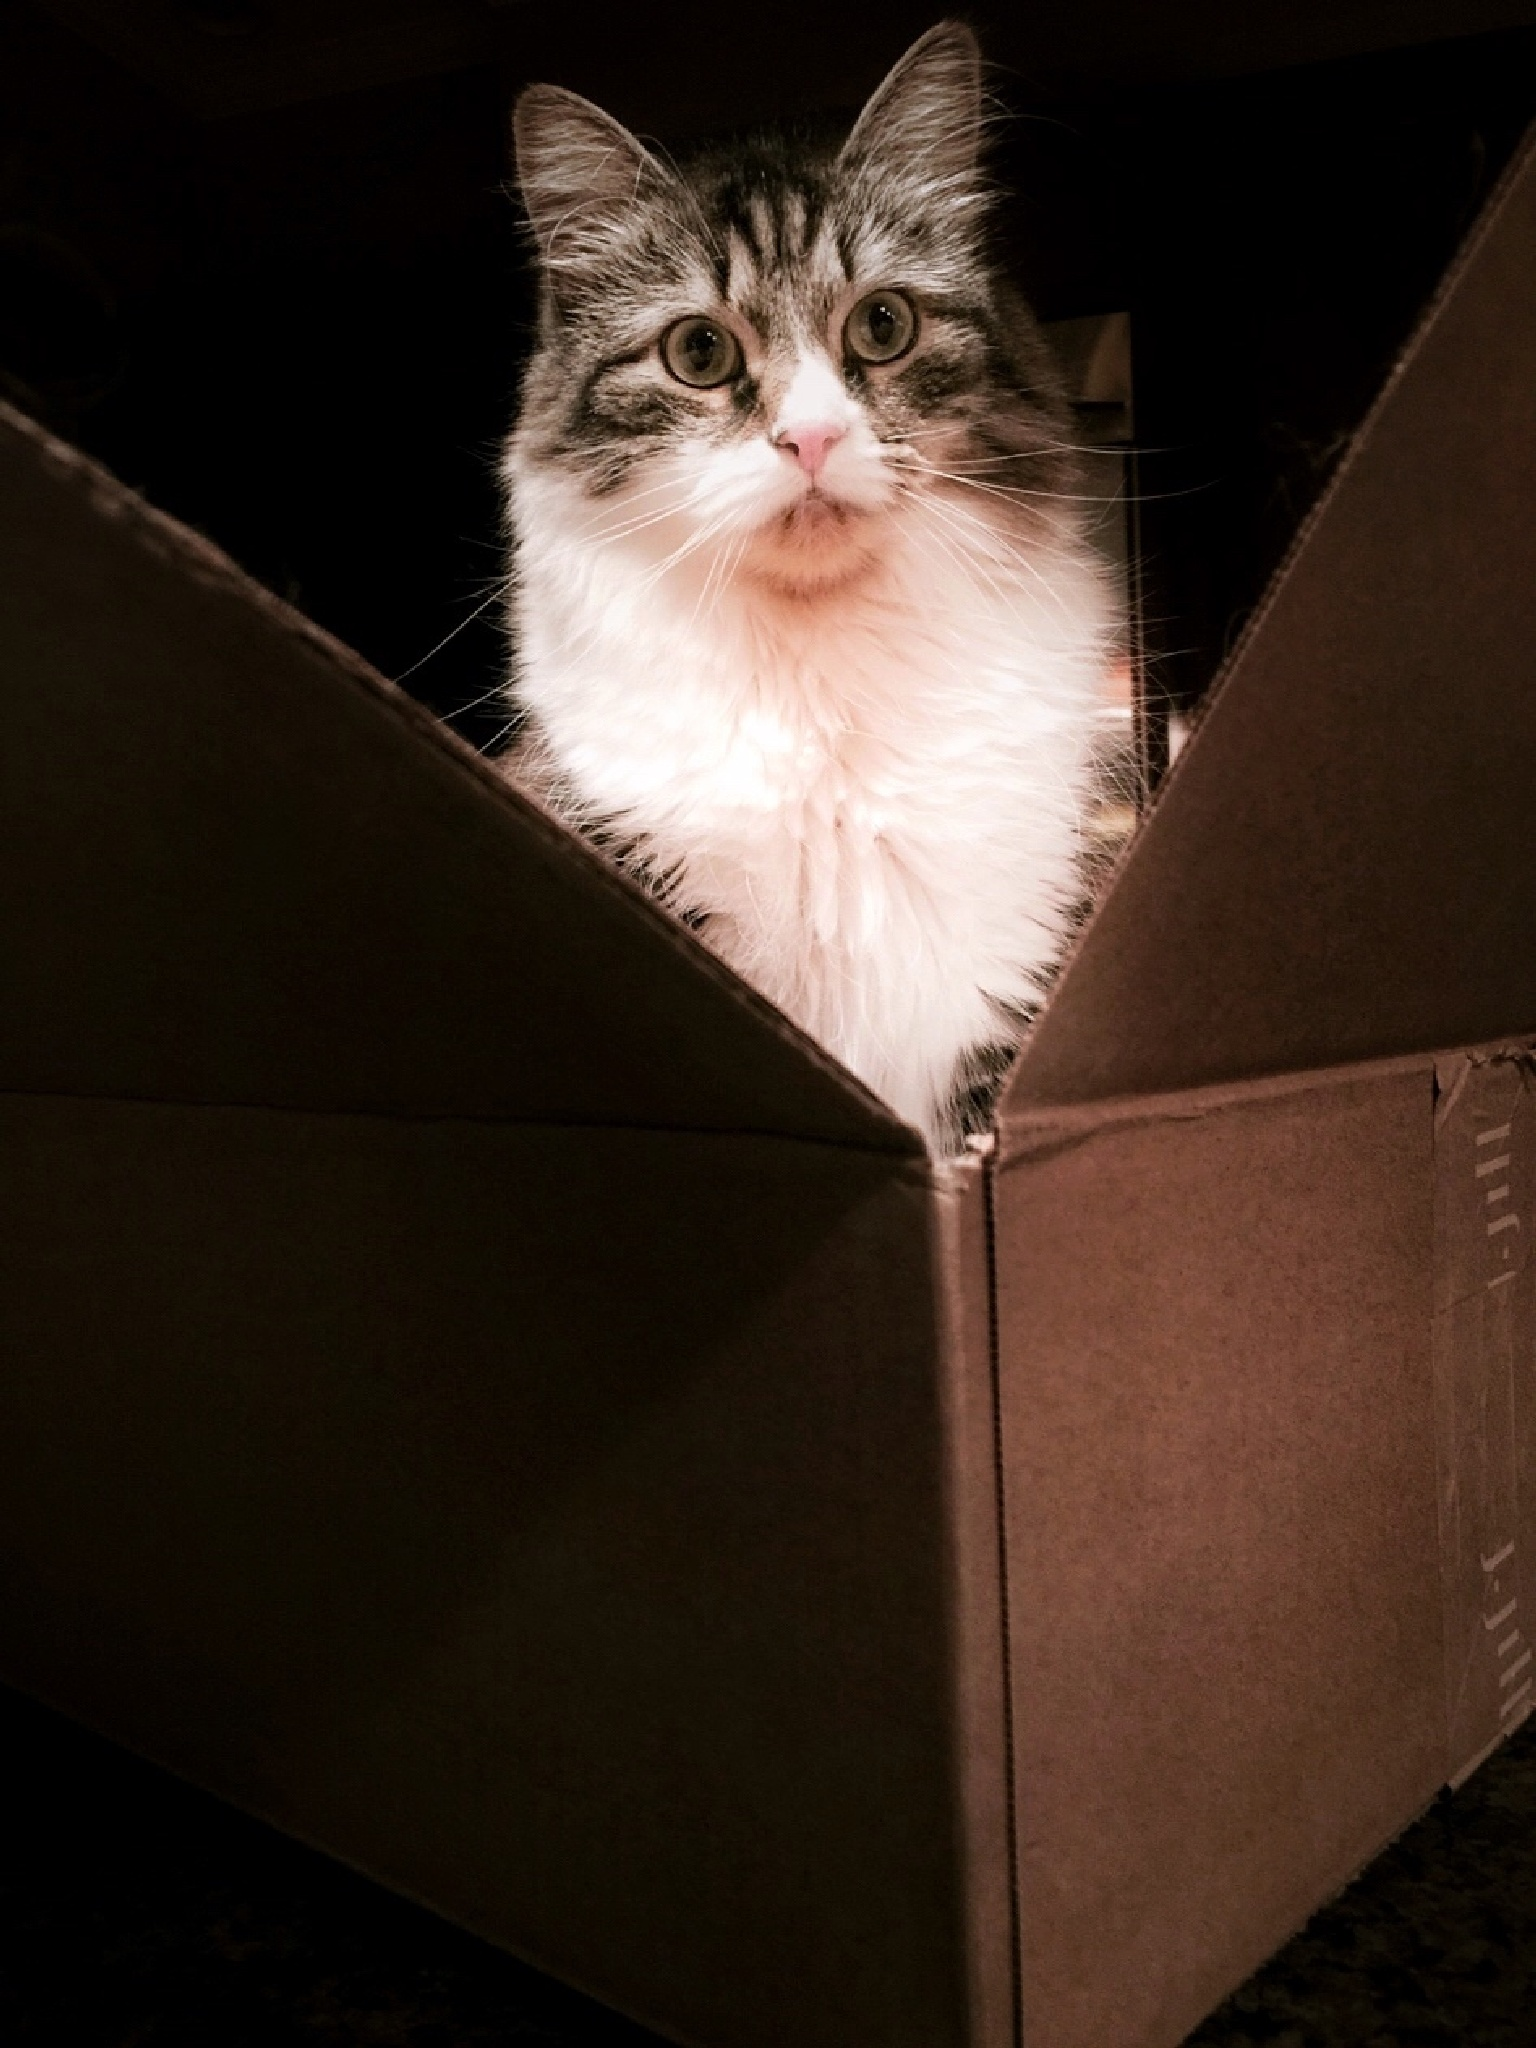 Back in the Box by Susan Wood